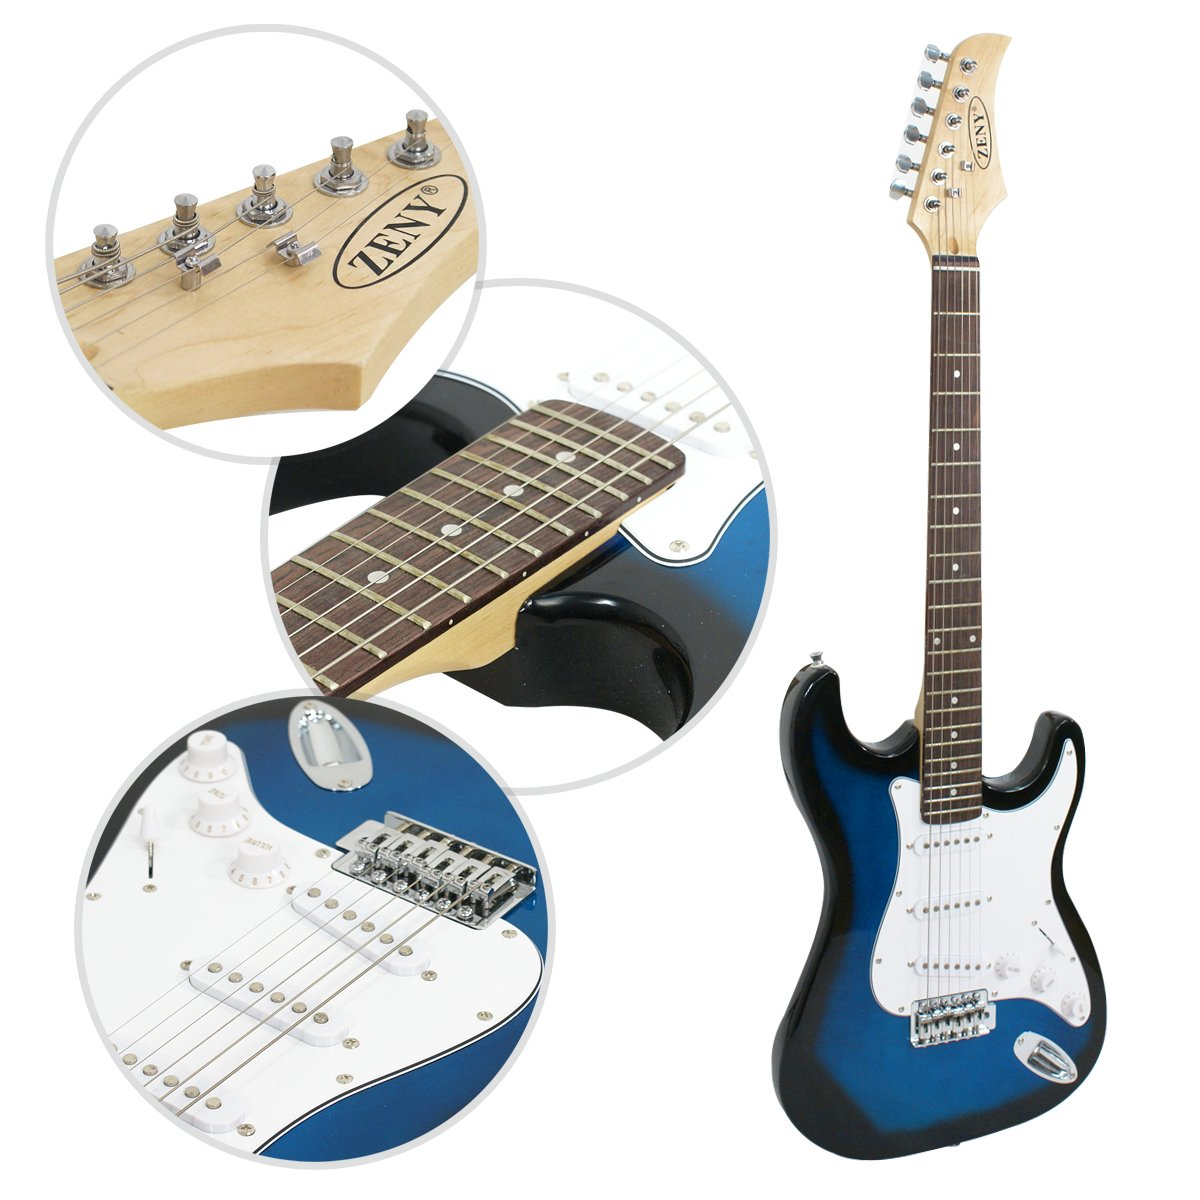 Close-ups of the Blue ZENY Electric Guitar